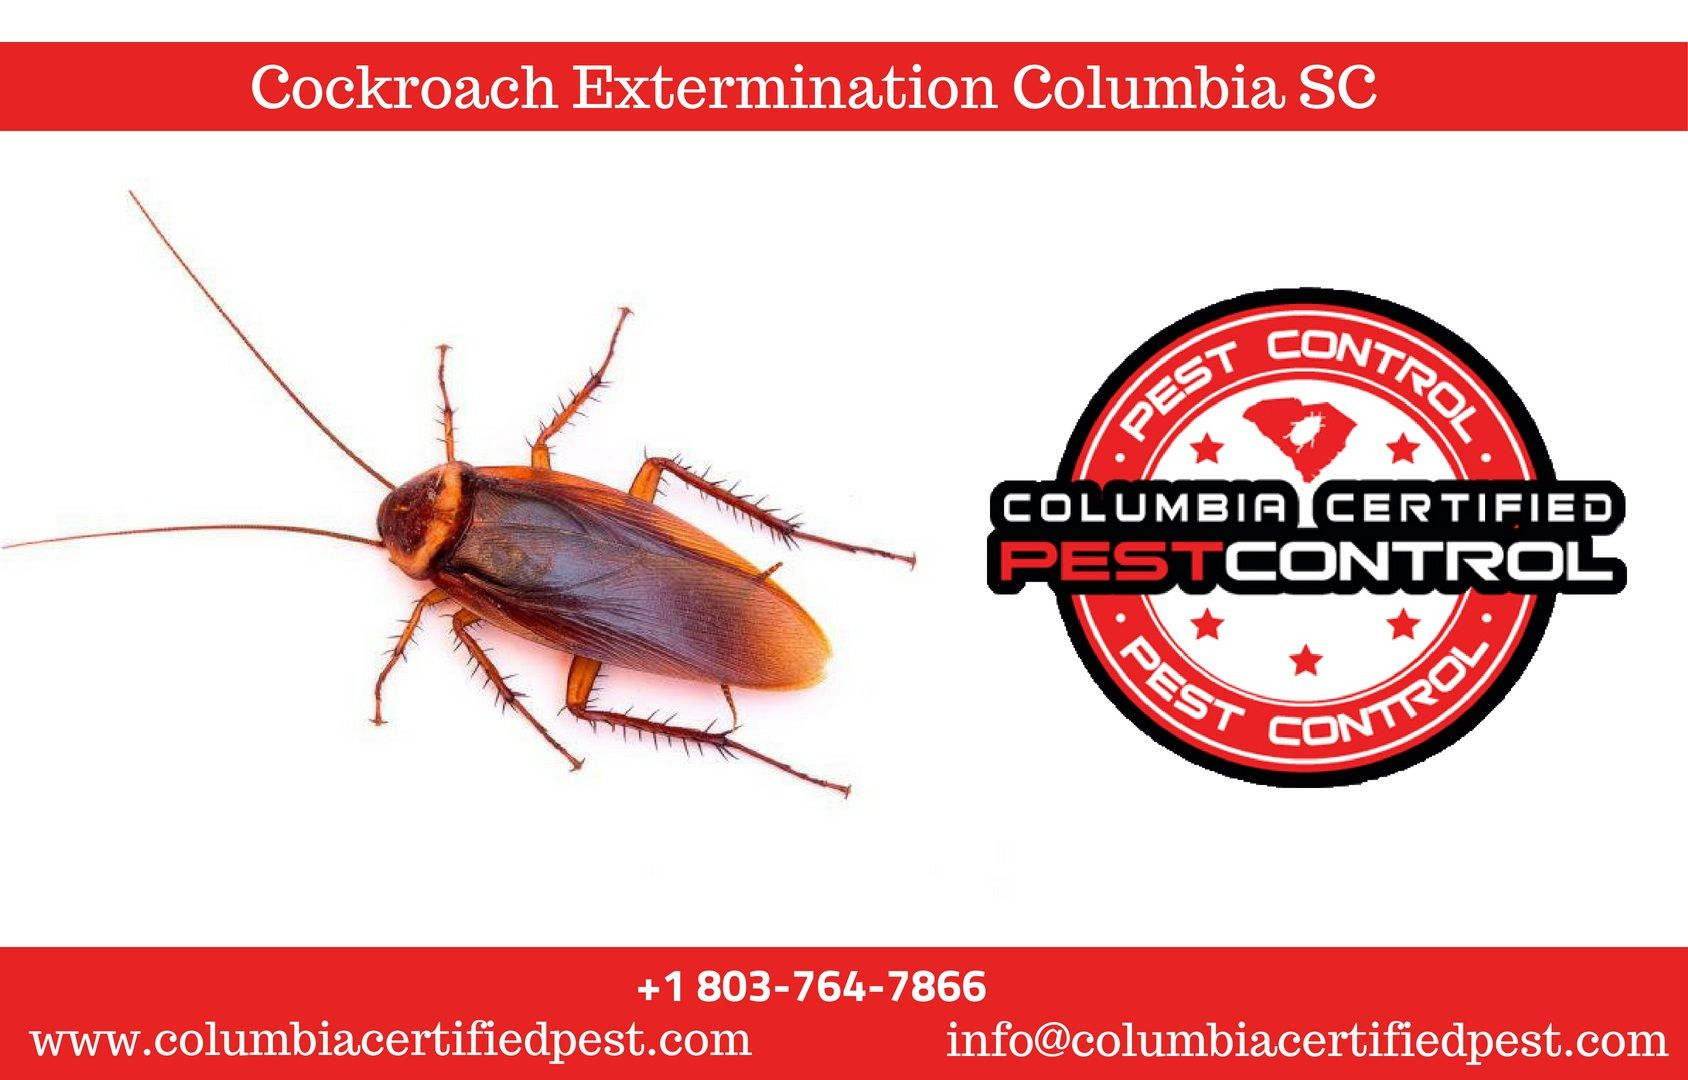 Roach Pest Control Columbia SC (With images) Cockroach